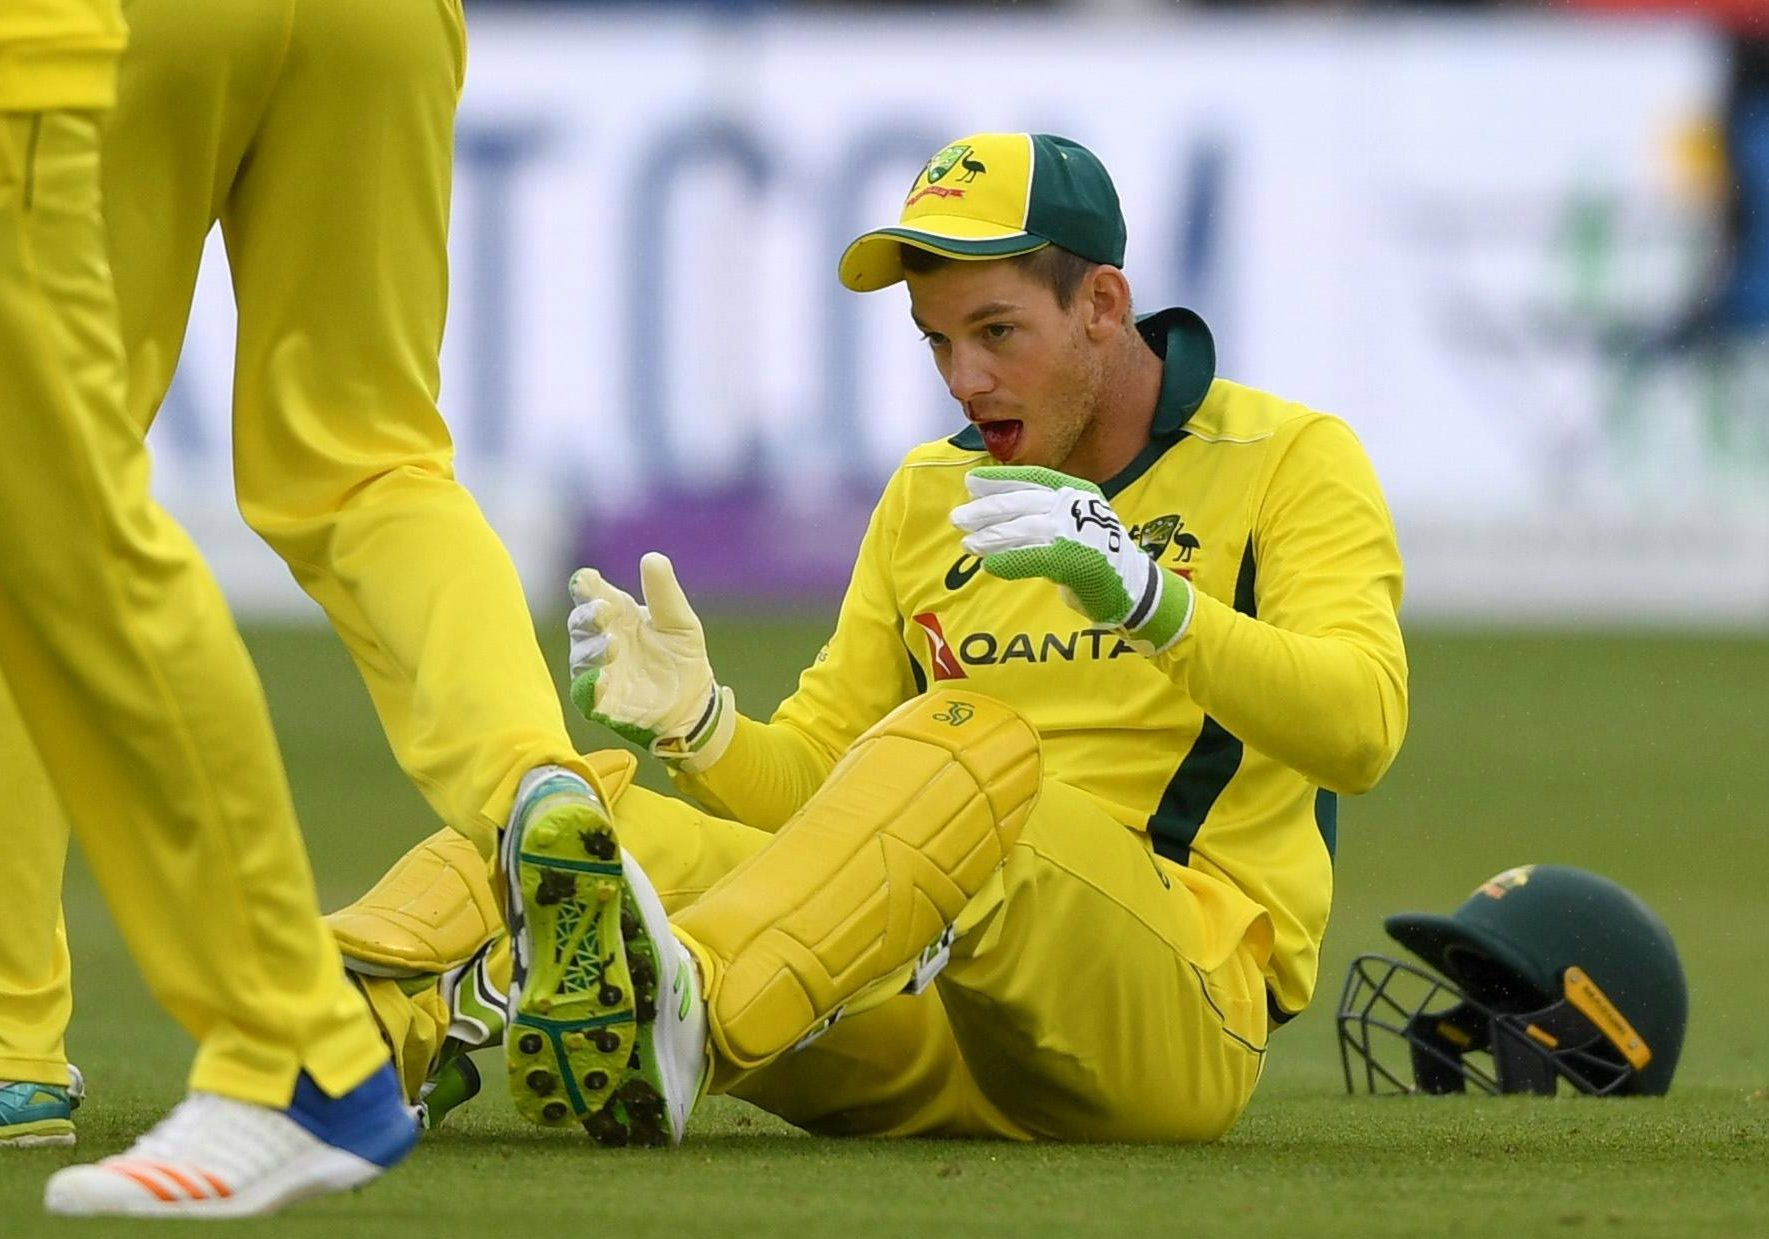 Tim Paine looked understandably dazed after being hit in the face